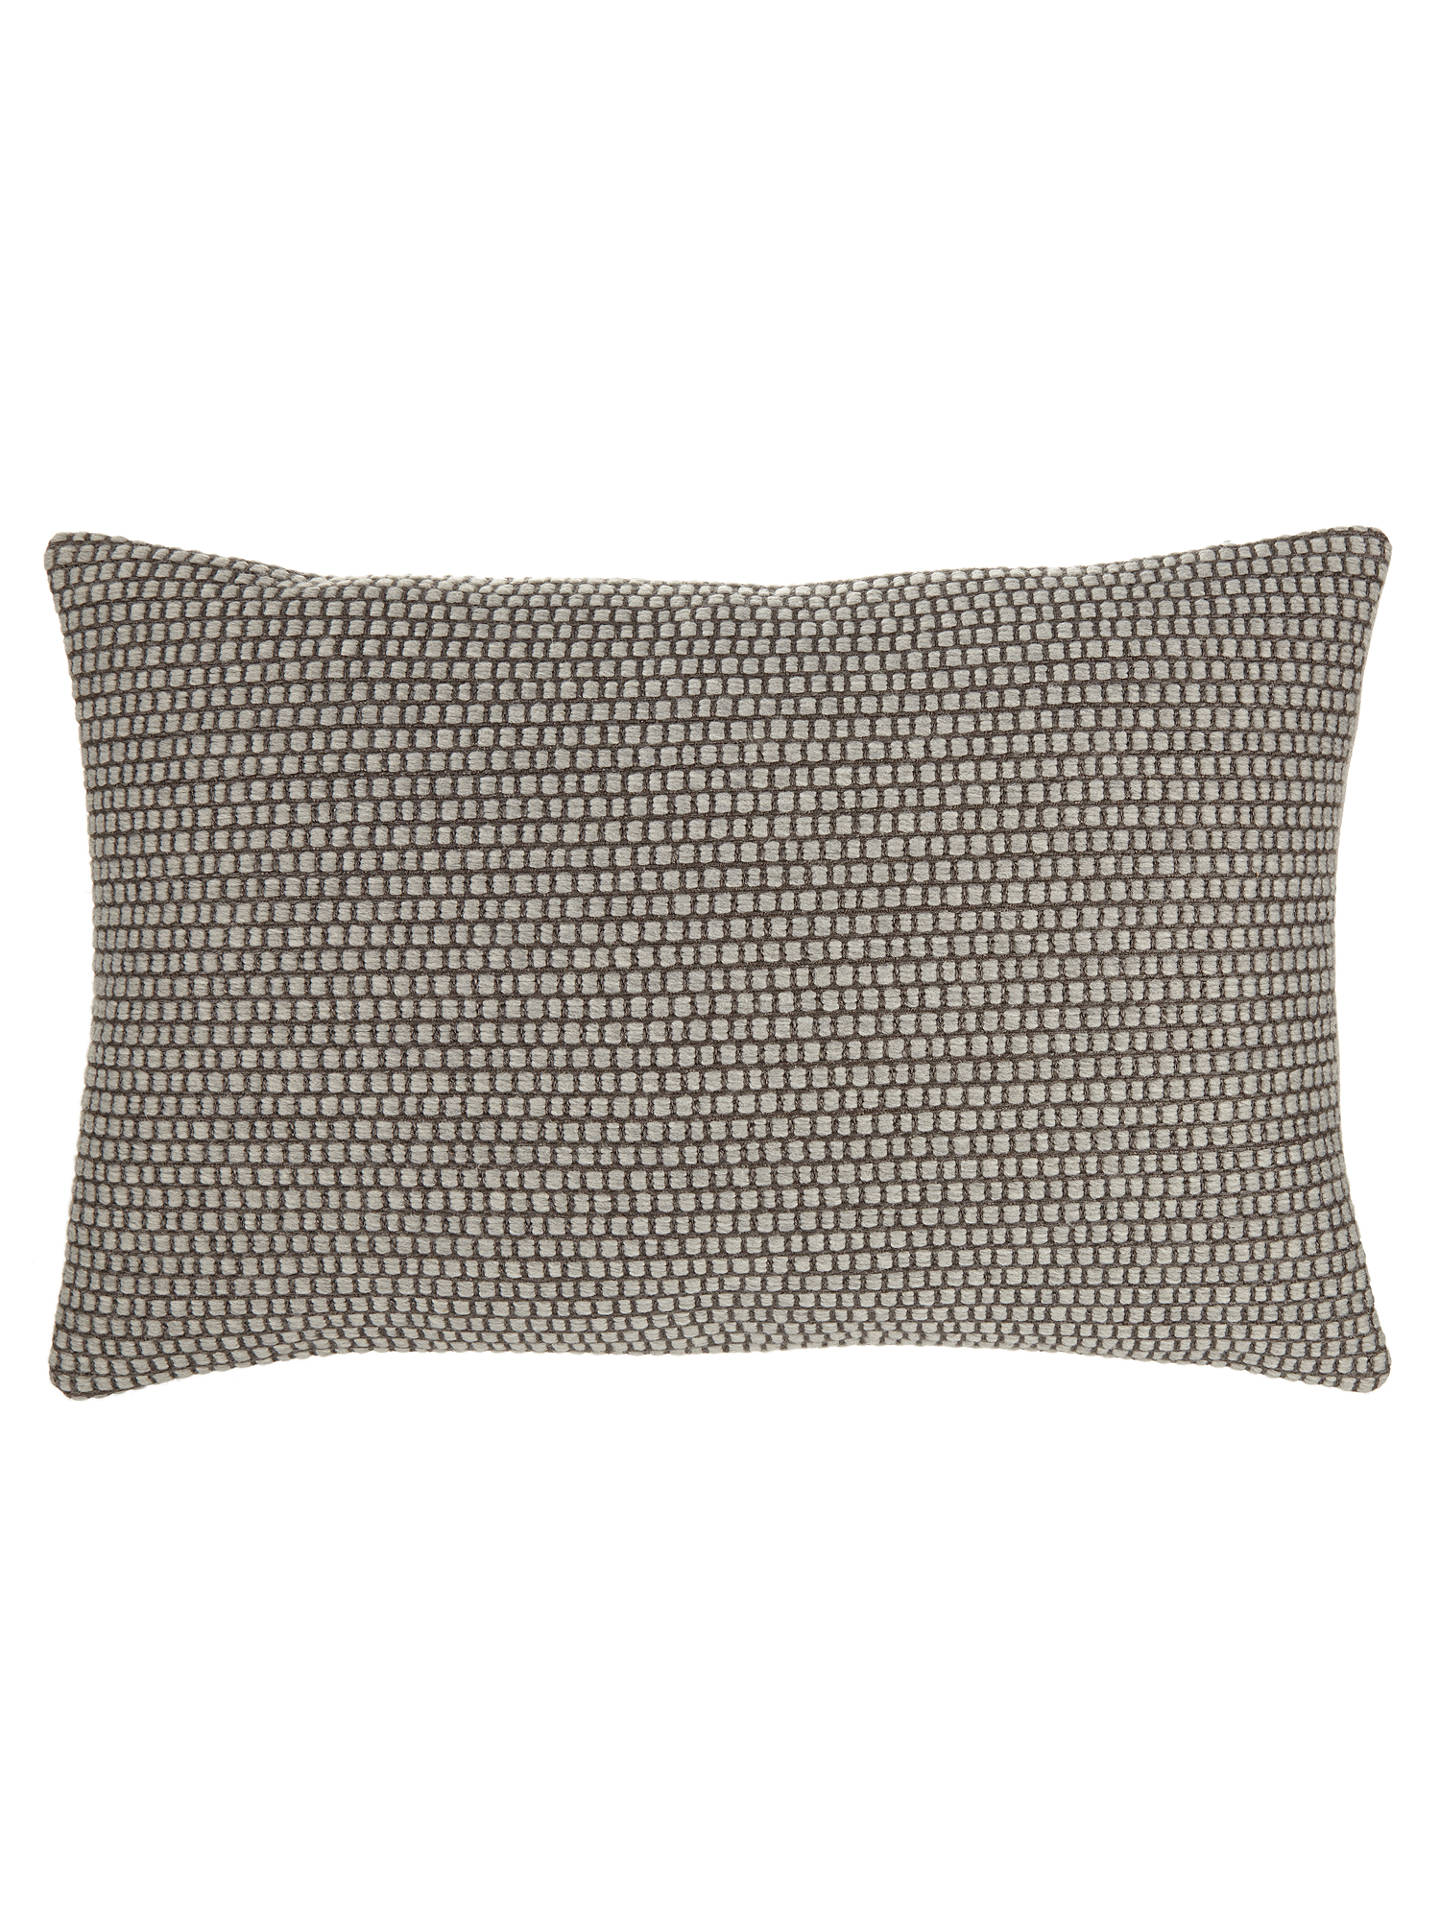 BuyDesign Project by John Lewis No.050 Cushion, Steel Online at johnlewis.com